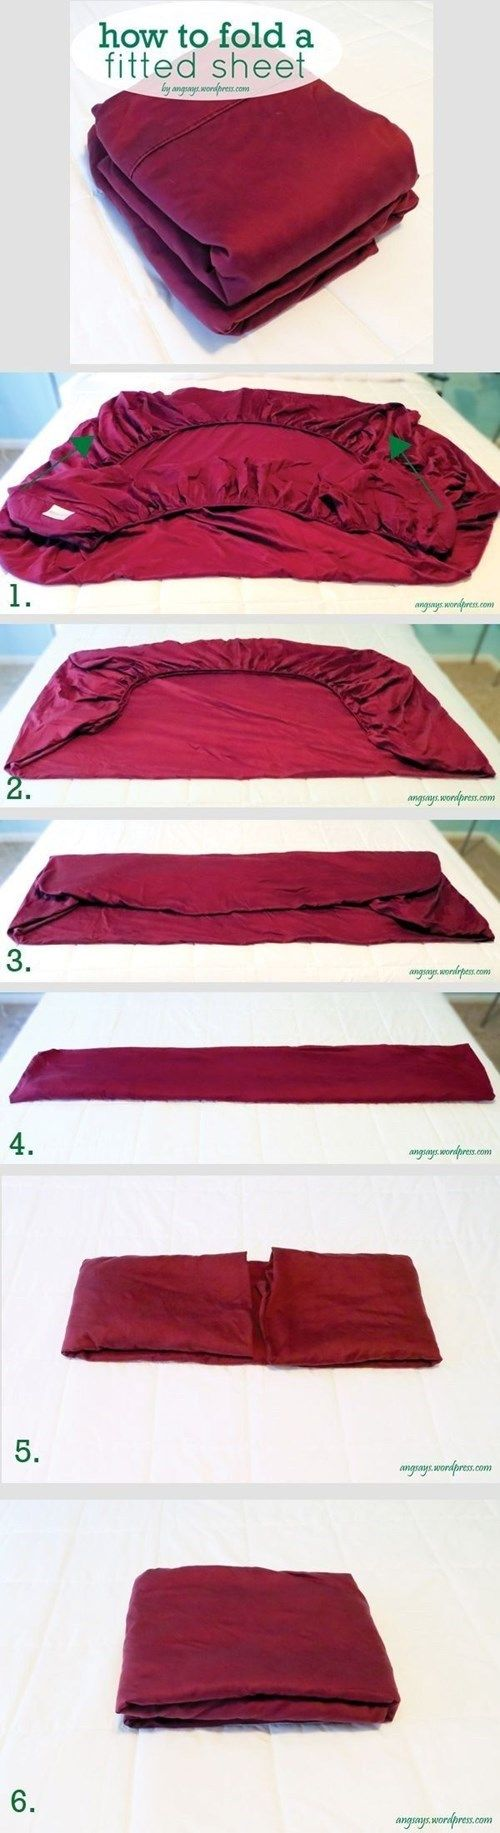 Turns Out You CAN Fold a Fitted Sheet